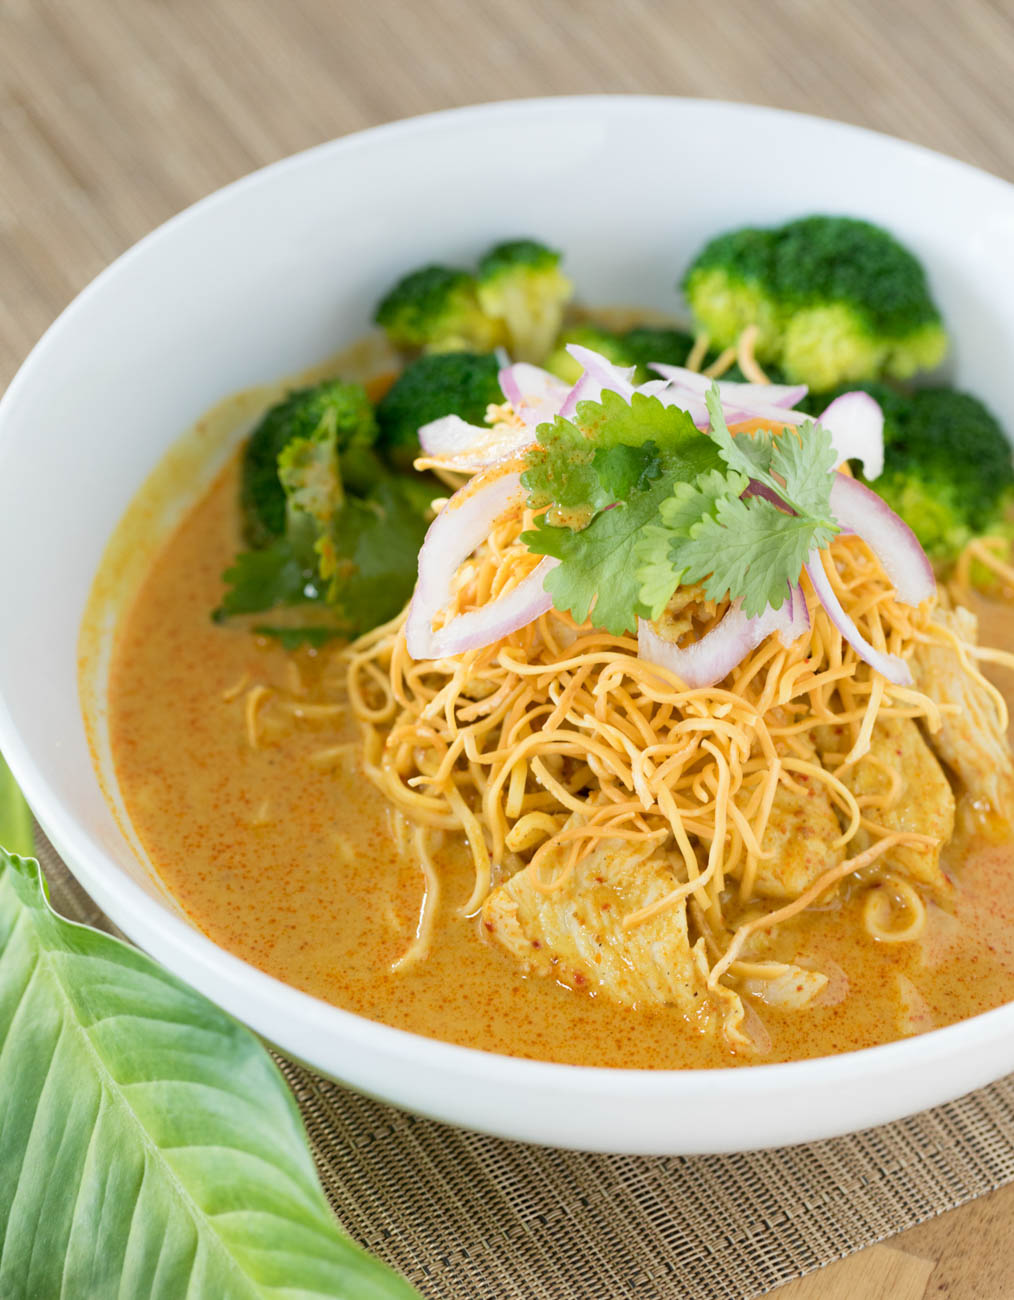 A Thai Street food special, Khao Soi Gai, is prepared with egg noodle, chicken, and curry made in-house with crispy noodles on top. / Image: Marlene Rounds // Published: 1.17.19